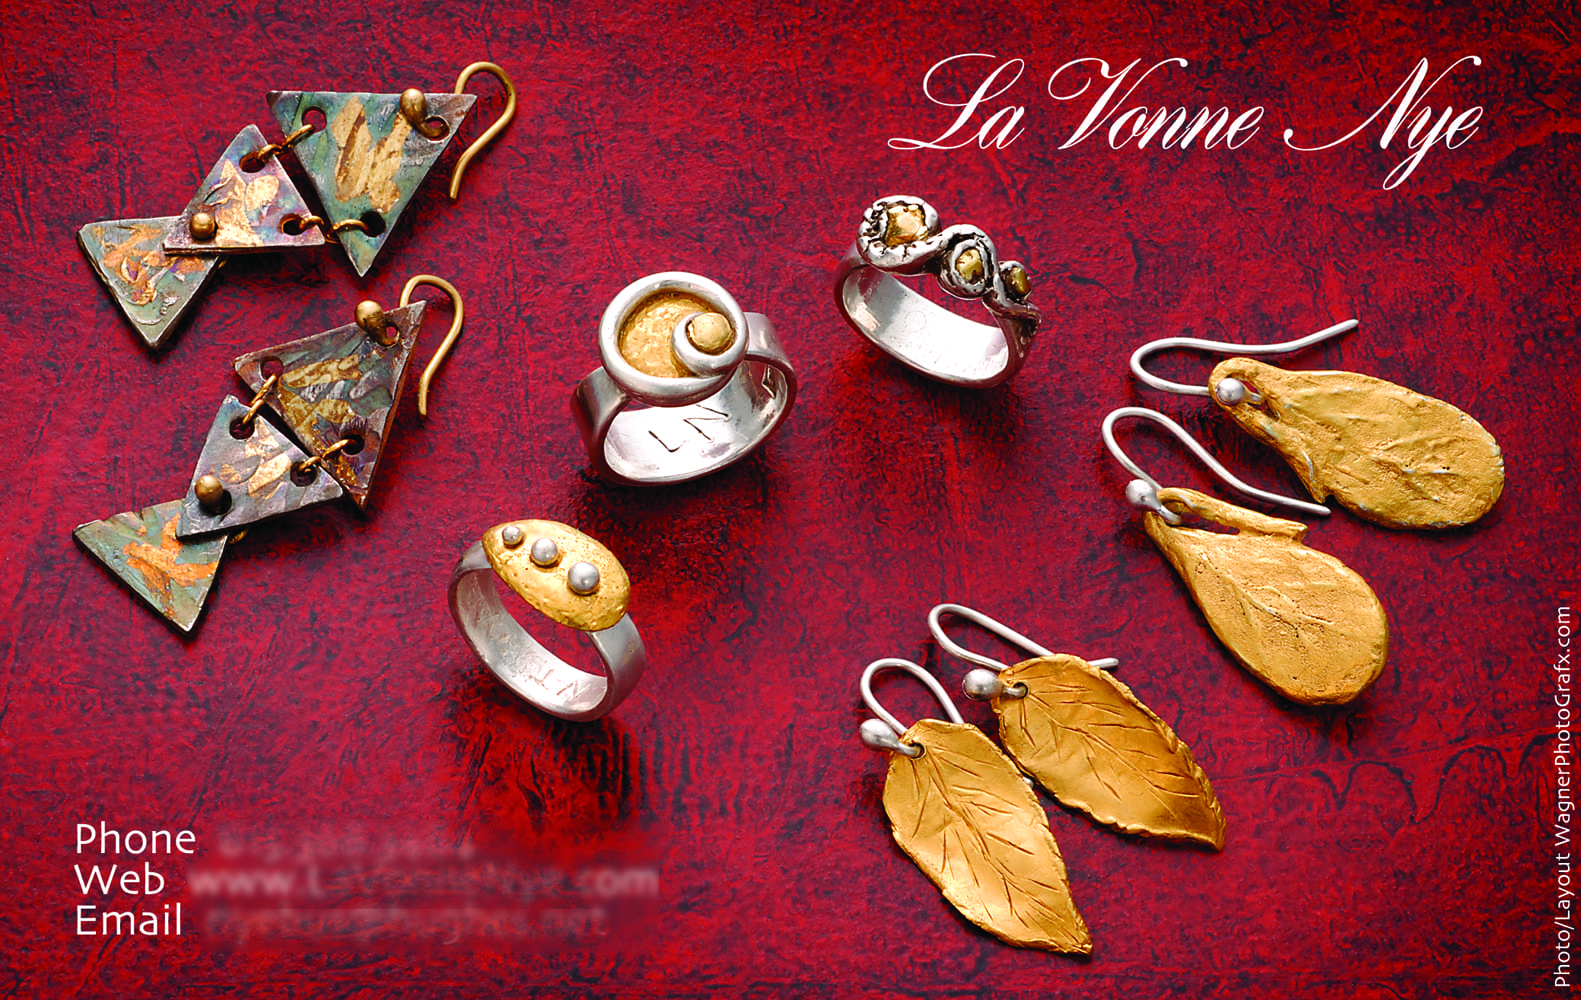 Ad page for La Vonne Nye jewelry featuring pair of fish shapped earrings made of three triangles of precious metal, three silver and gold rings with different designs on top, two additional pairs of gold earrings in leaf shapes Jewelry Photography